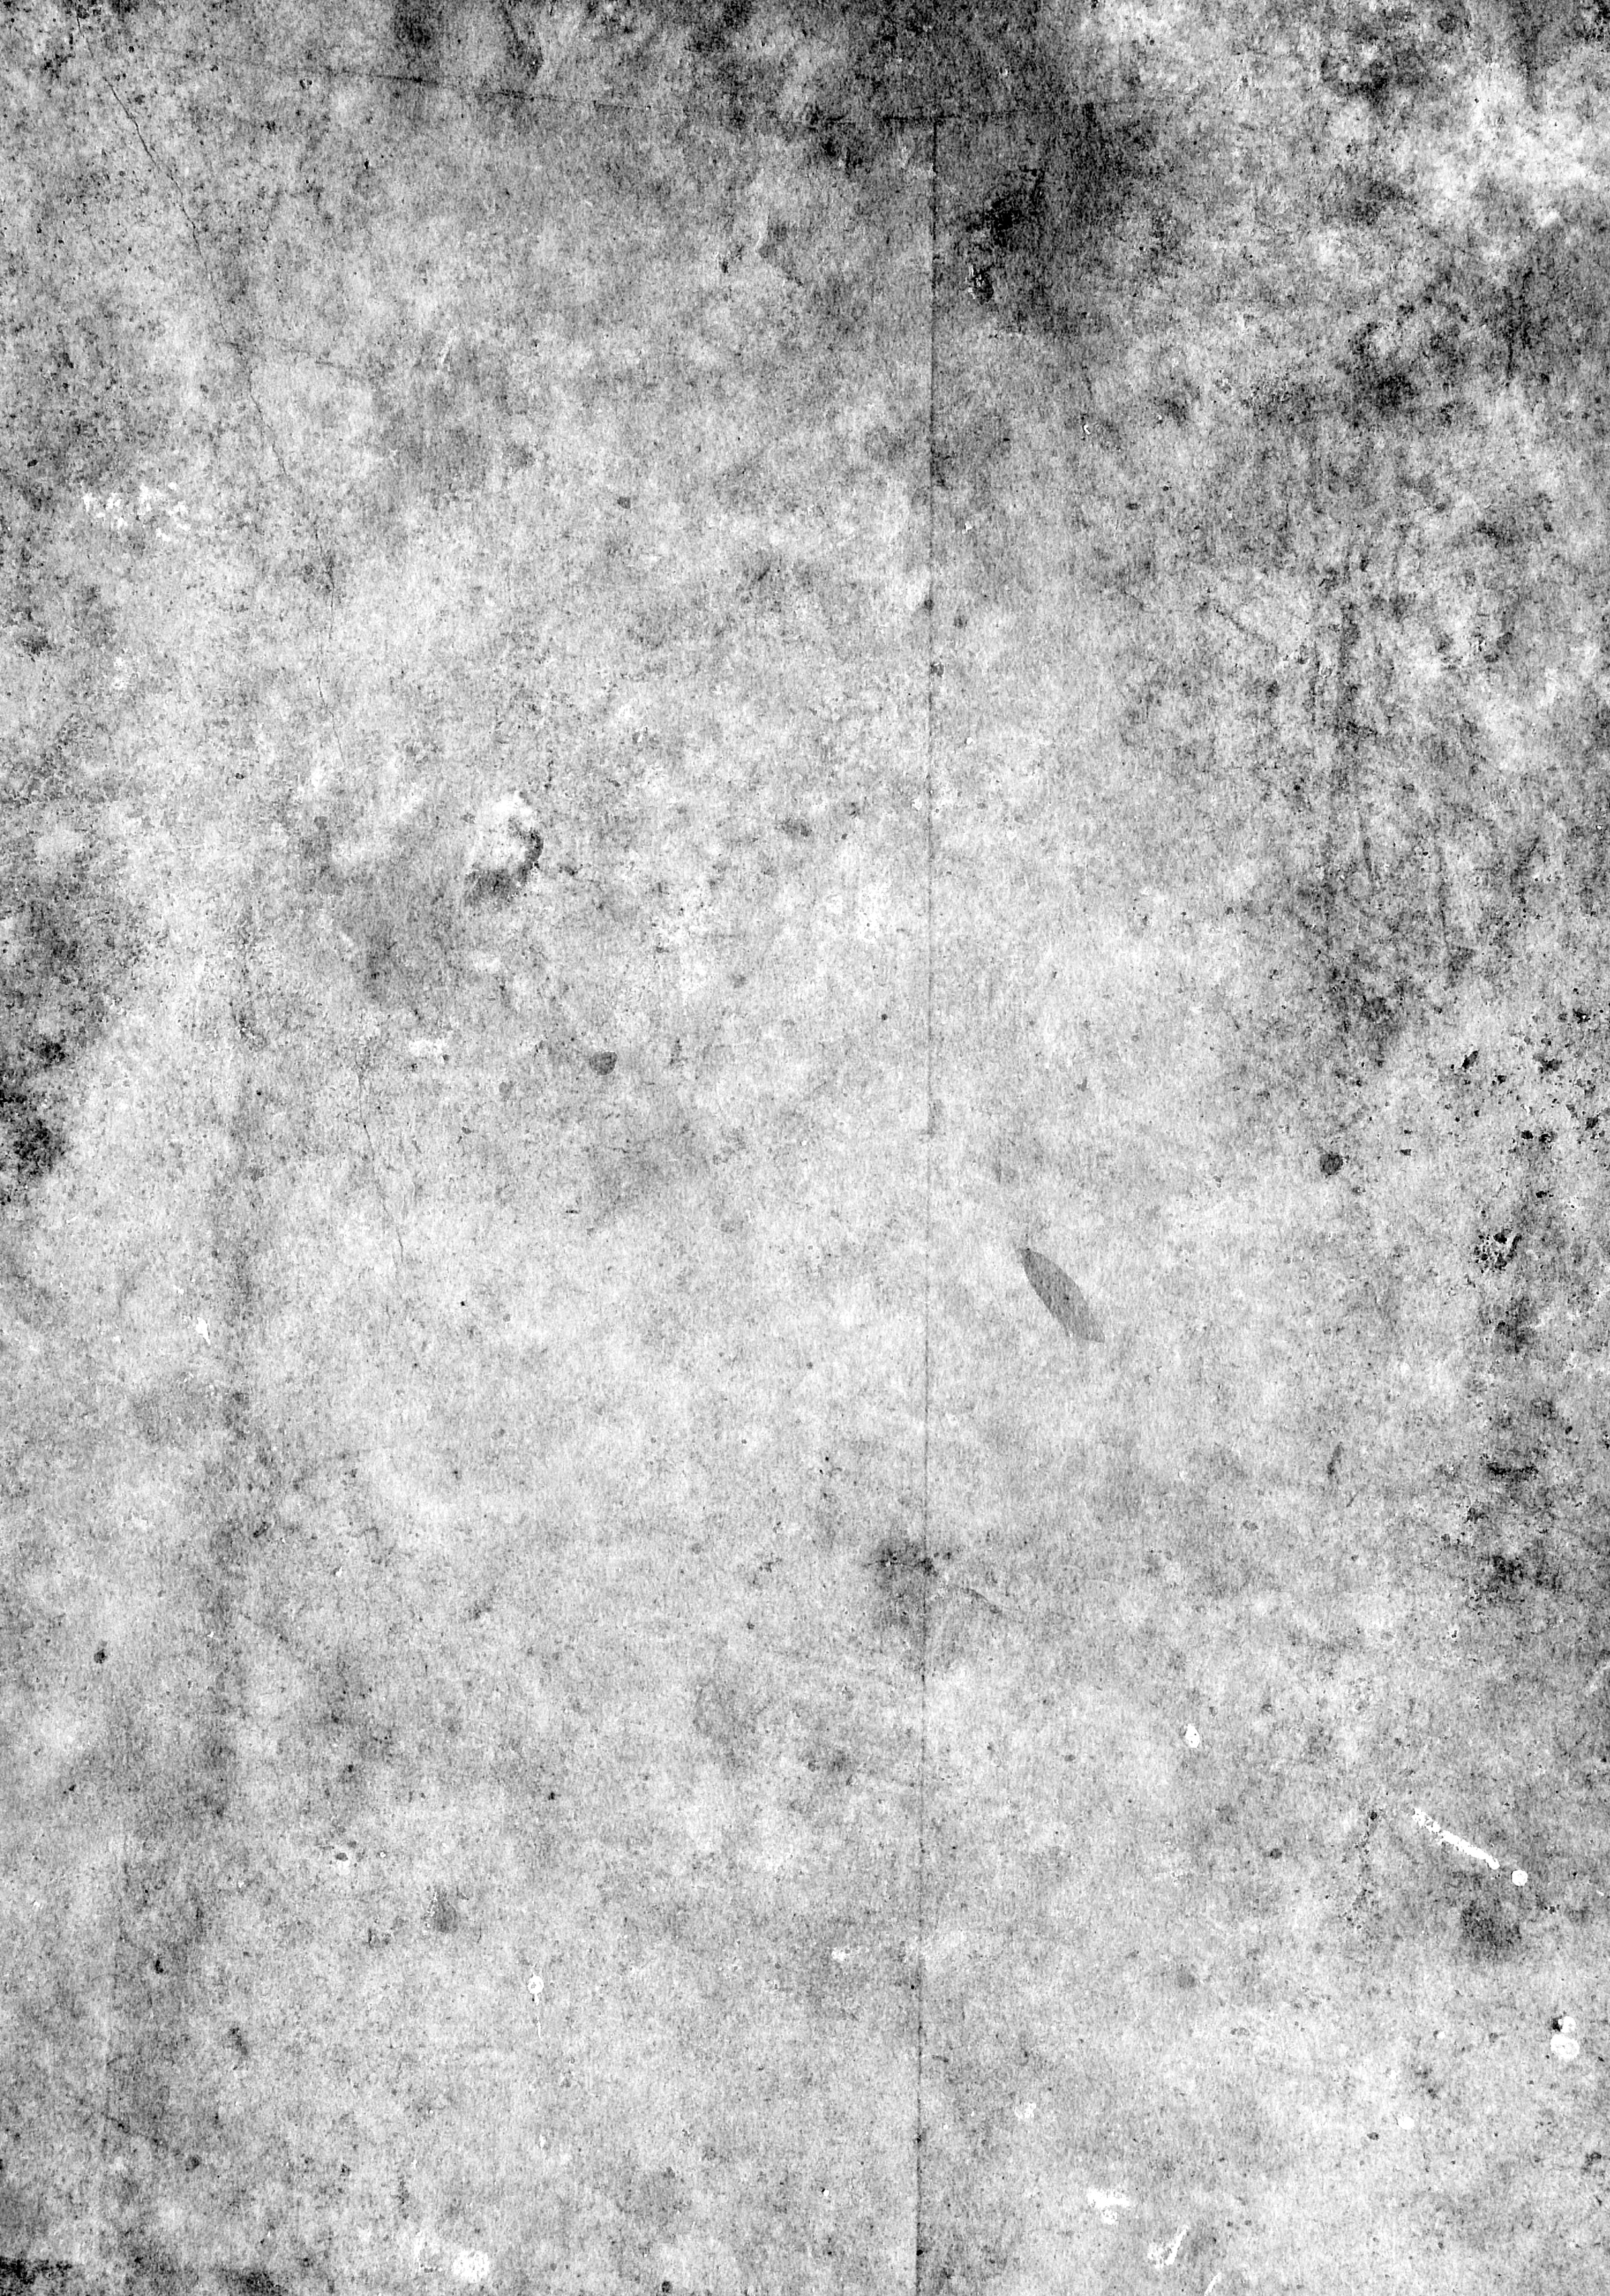 Free High Contrast Black And White Grunge Texture Texture - L+T